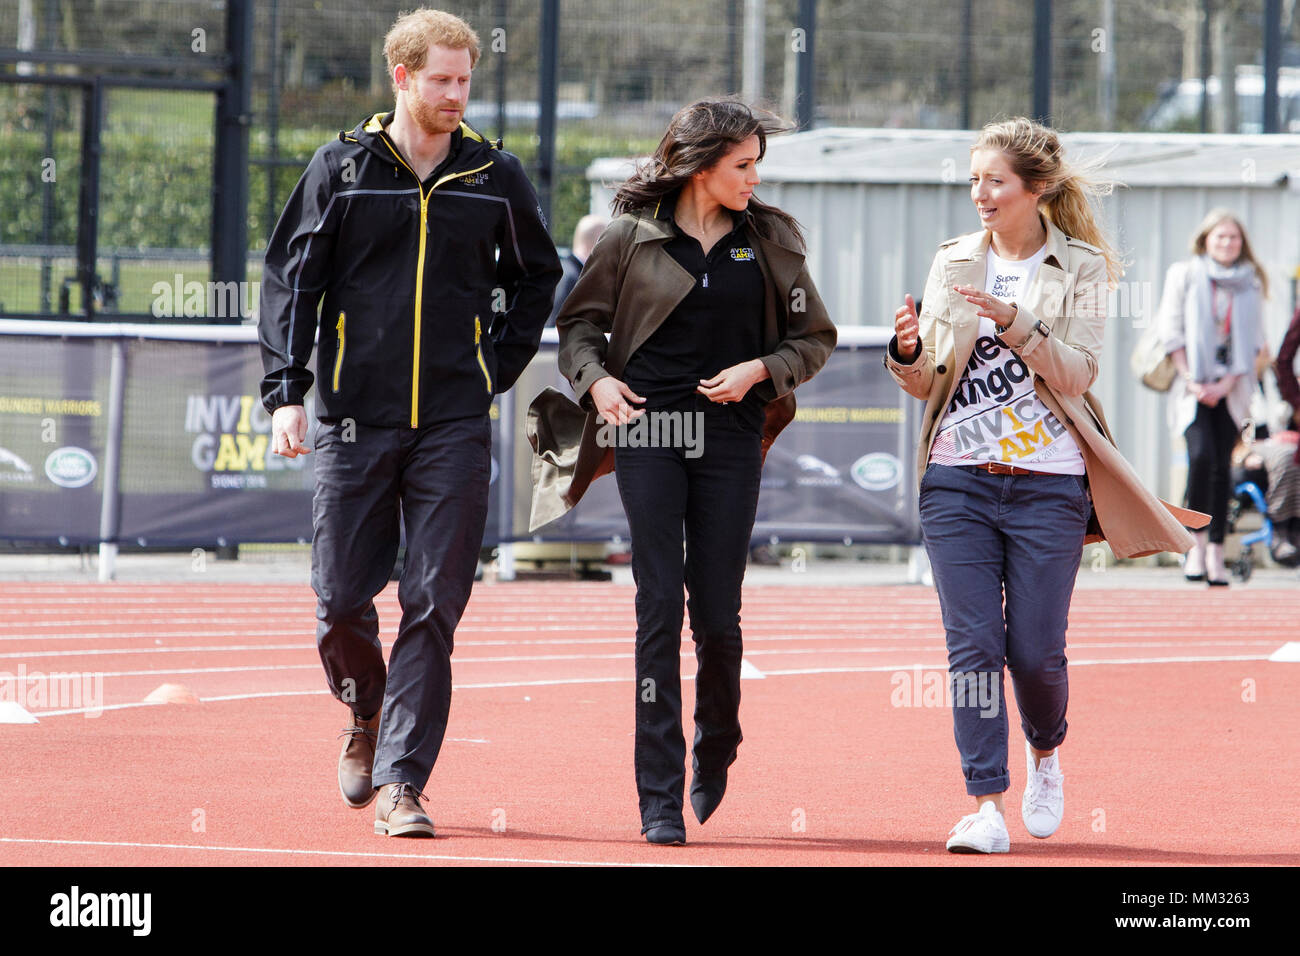 Bath, UK. 6/04/18.Prince Harry and  Meghan Markle are pictured at the University of Bath as they attend the UK team trials for the 2018 Invictus Games Stock Photo